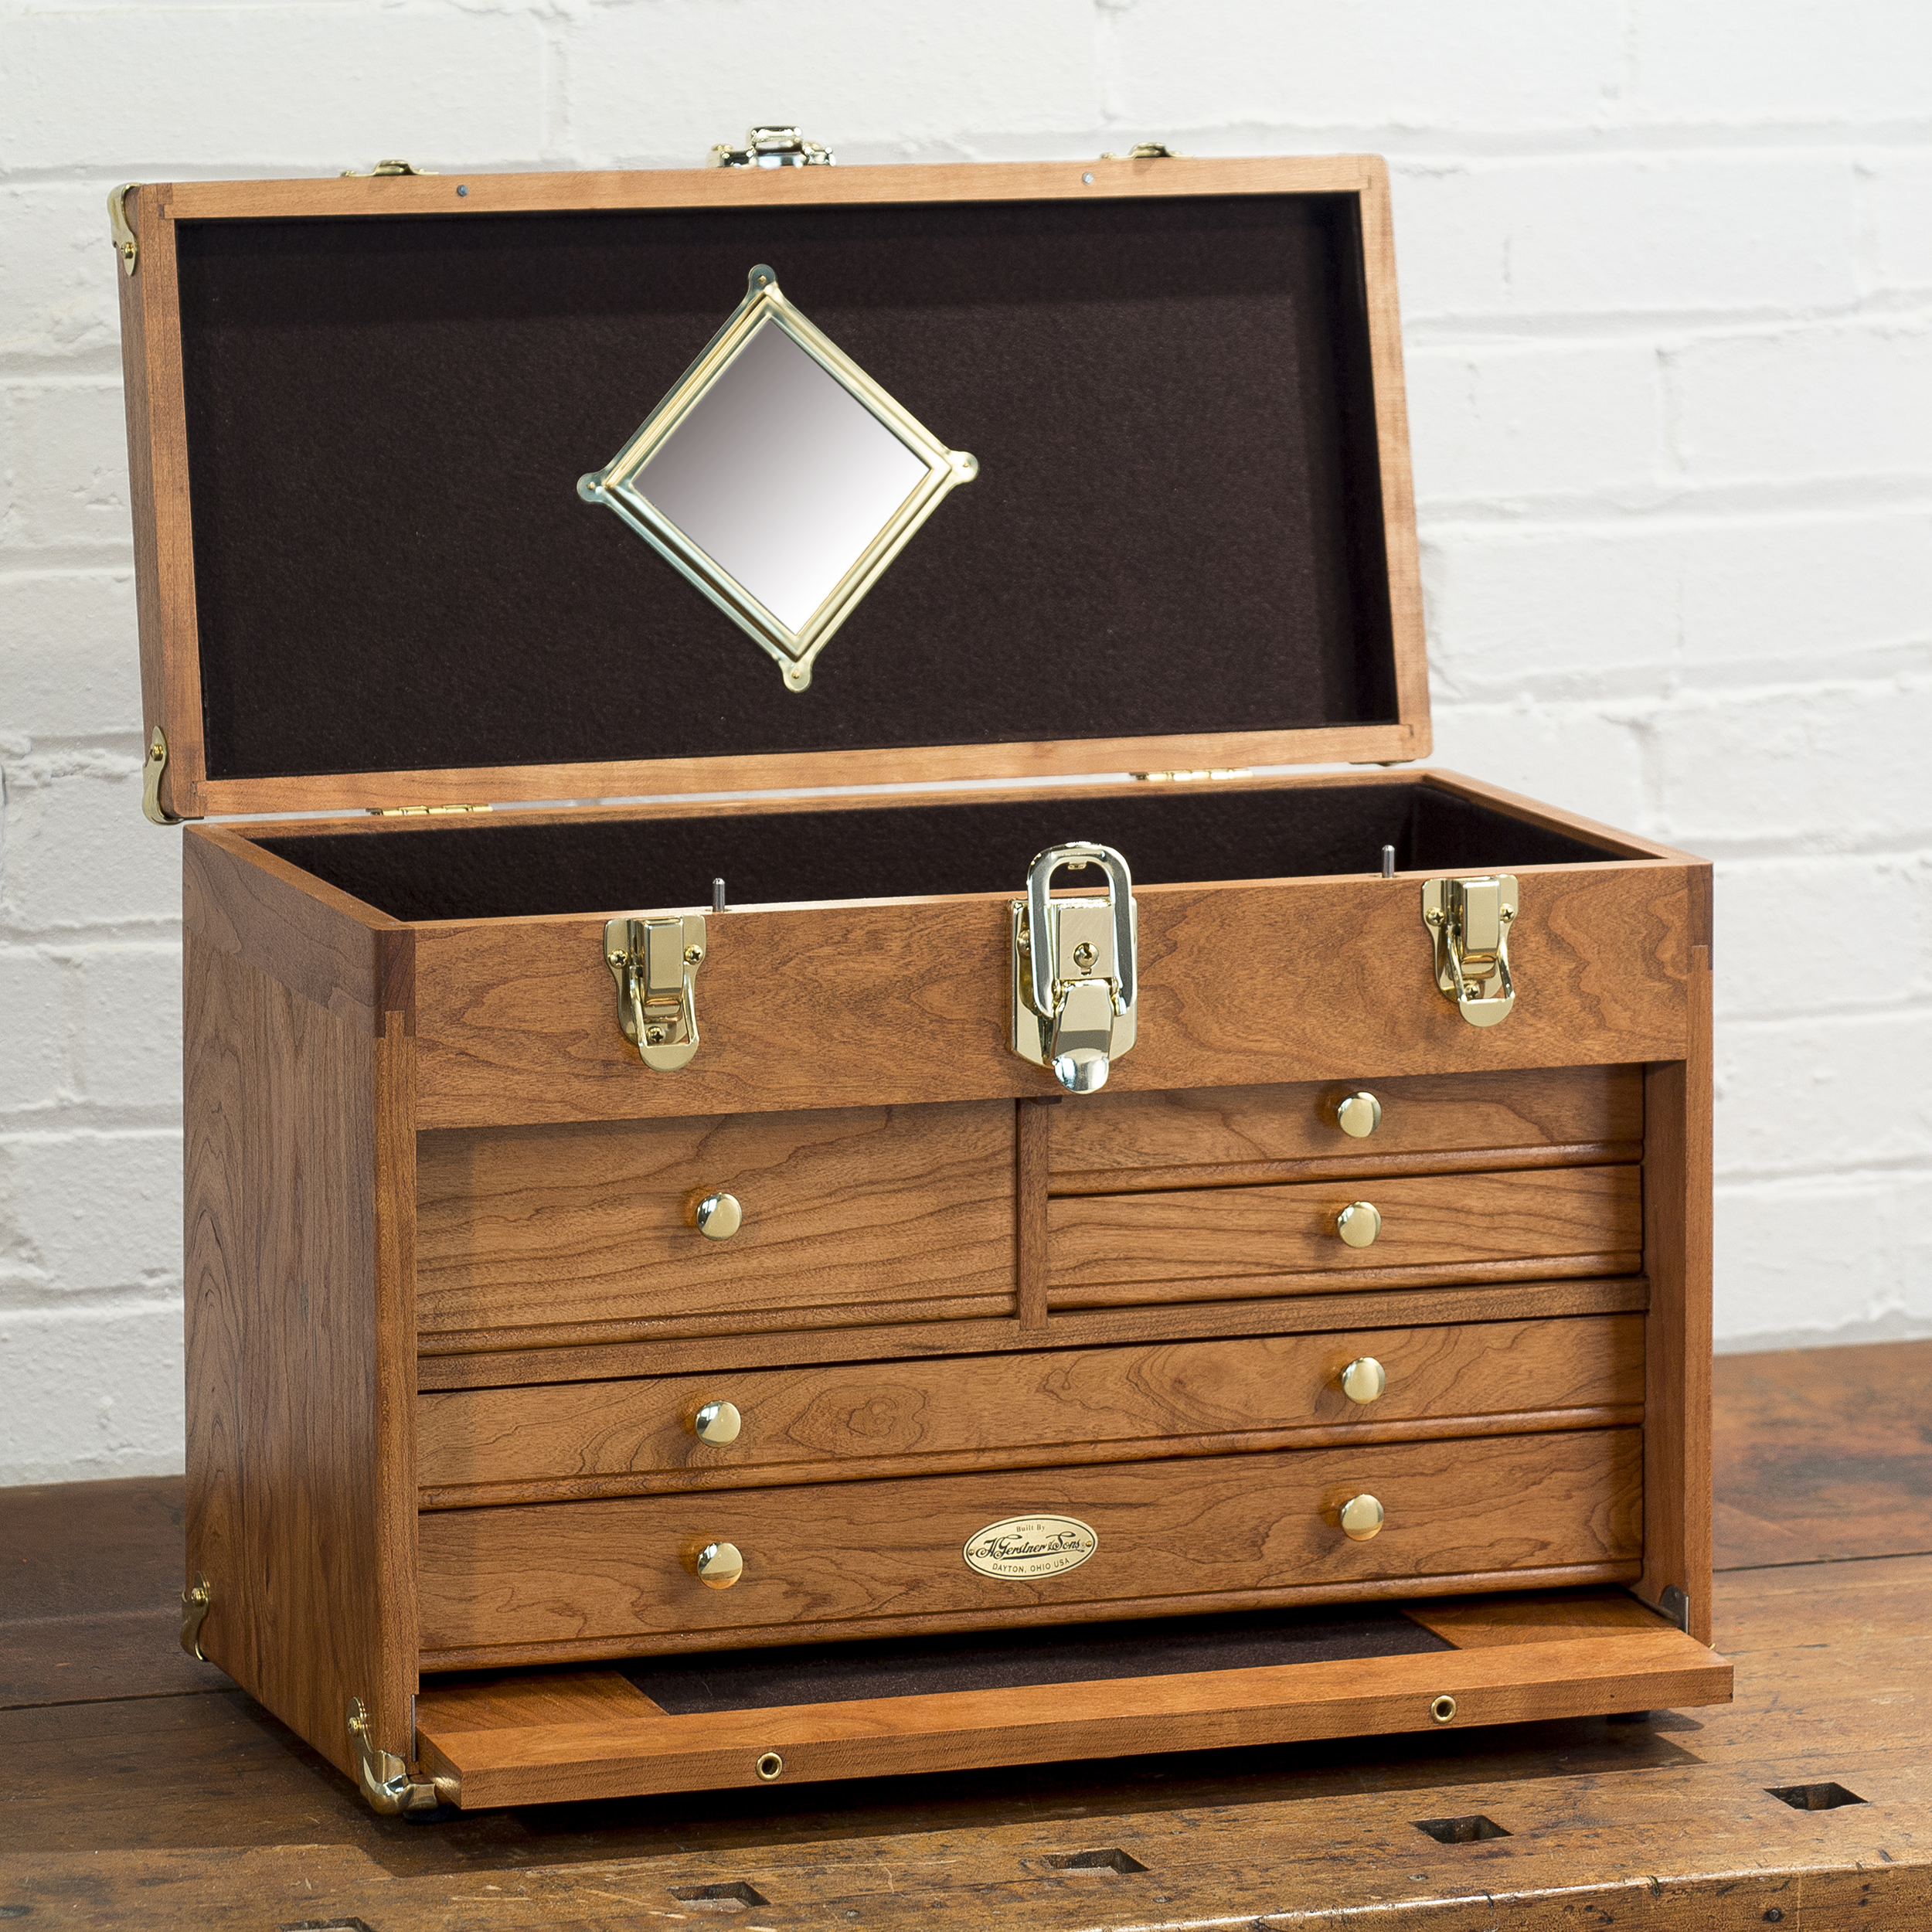 C1805 American Cherry Special Chest